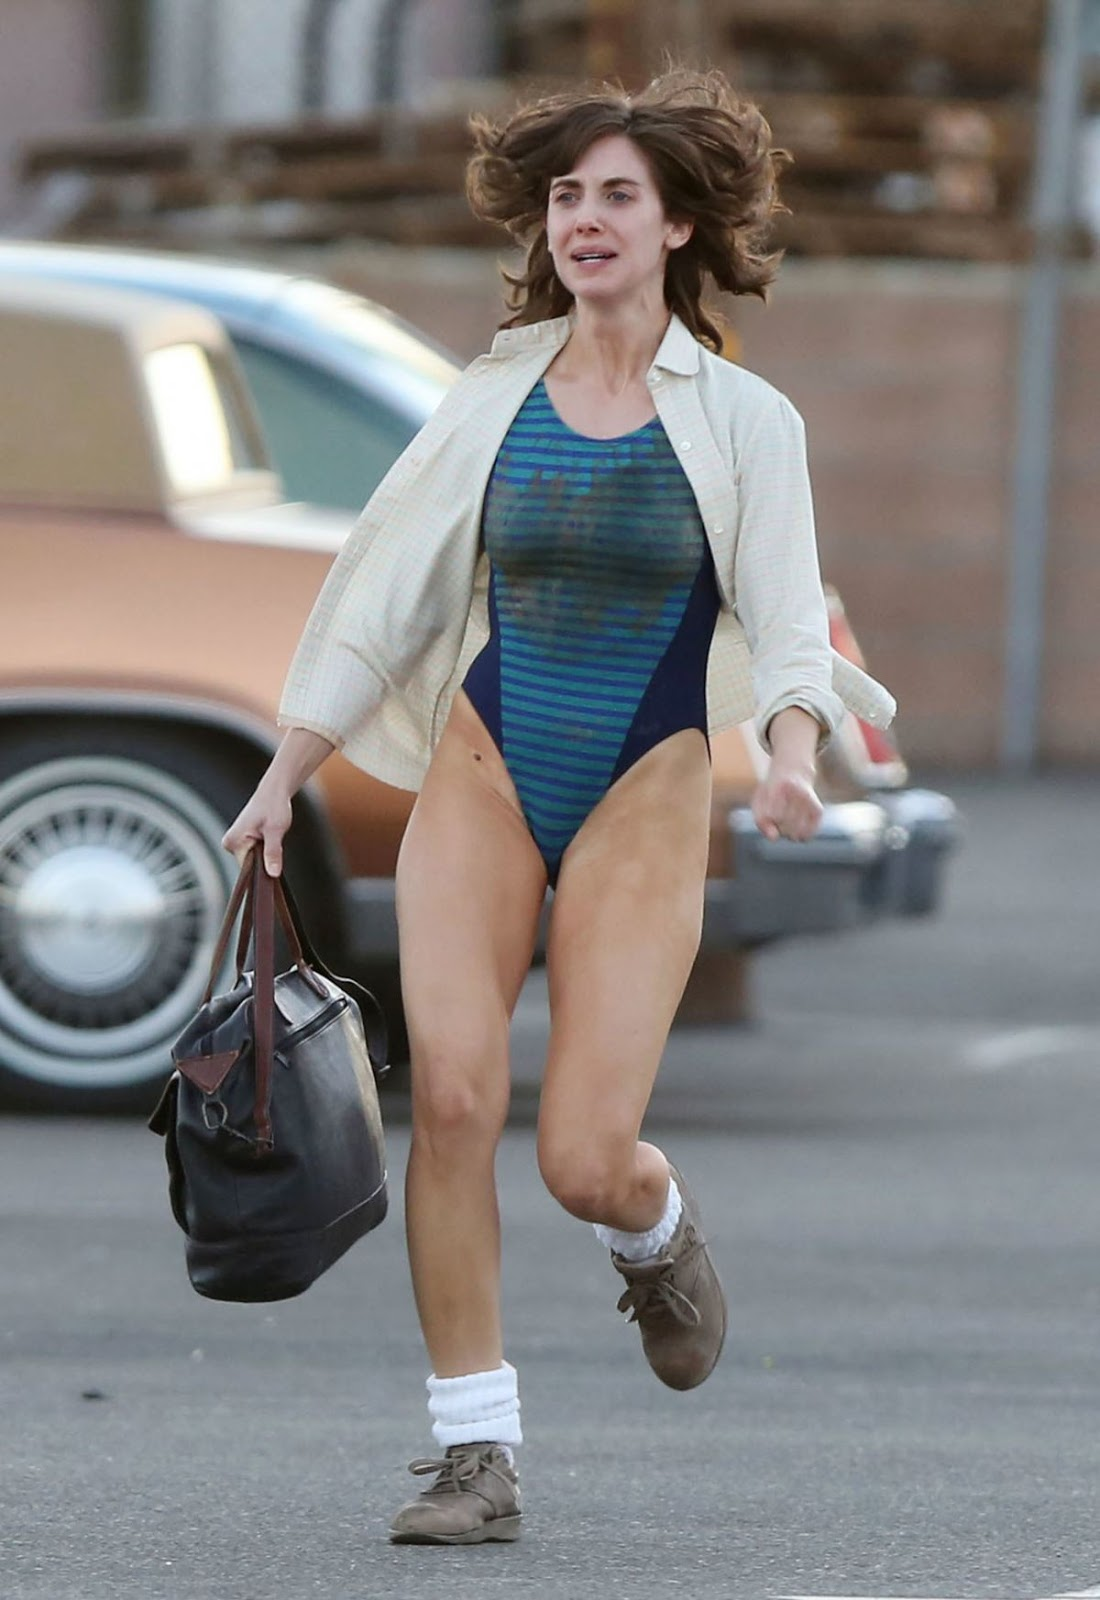 Paparazzi Alison Brie nude (88 photos), Sexy, Fappening, Boobs, braless 2006